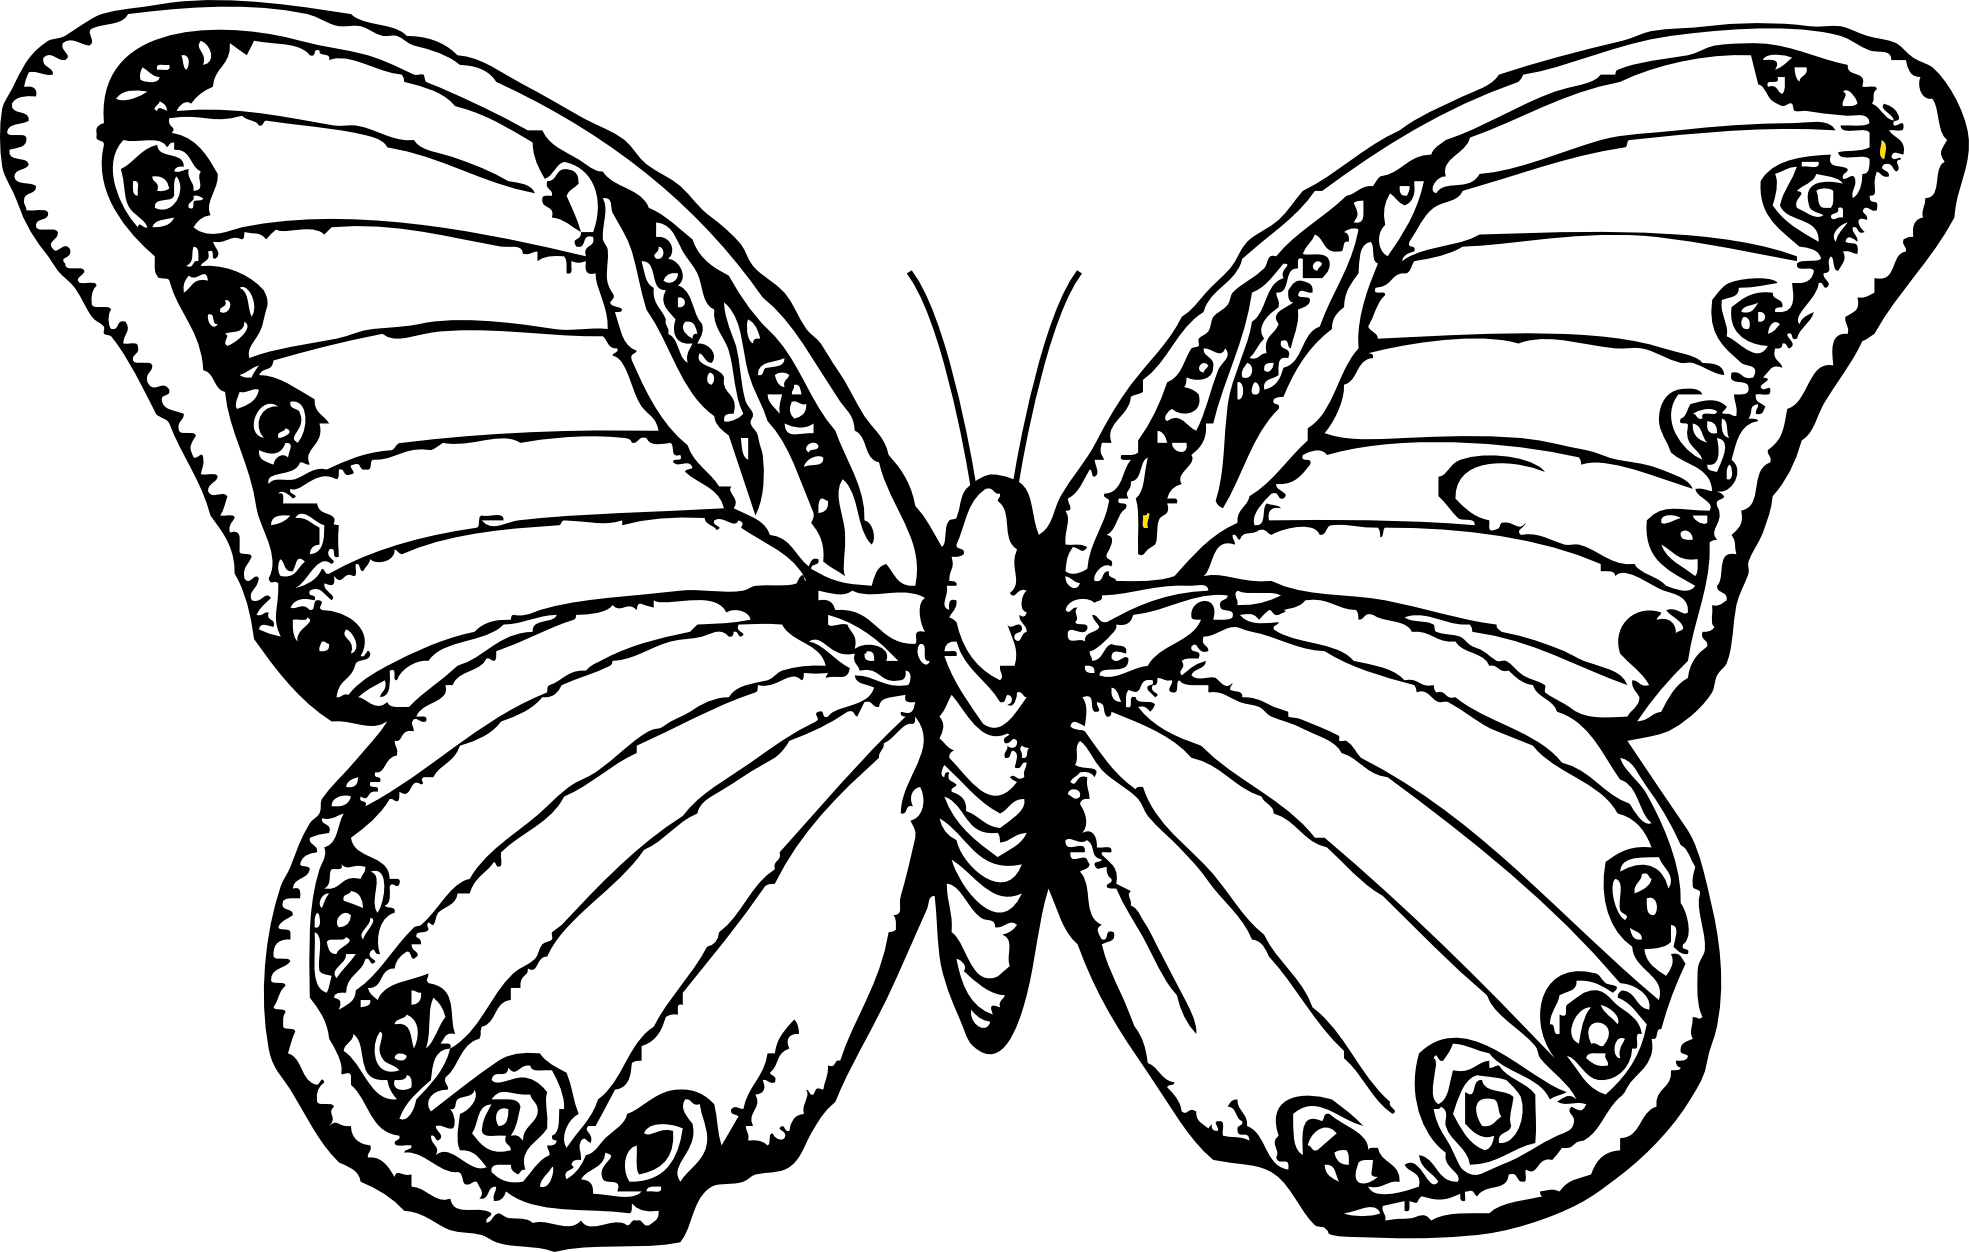 Drawing Lines Using Svg : Butterfly line art cliparts